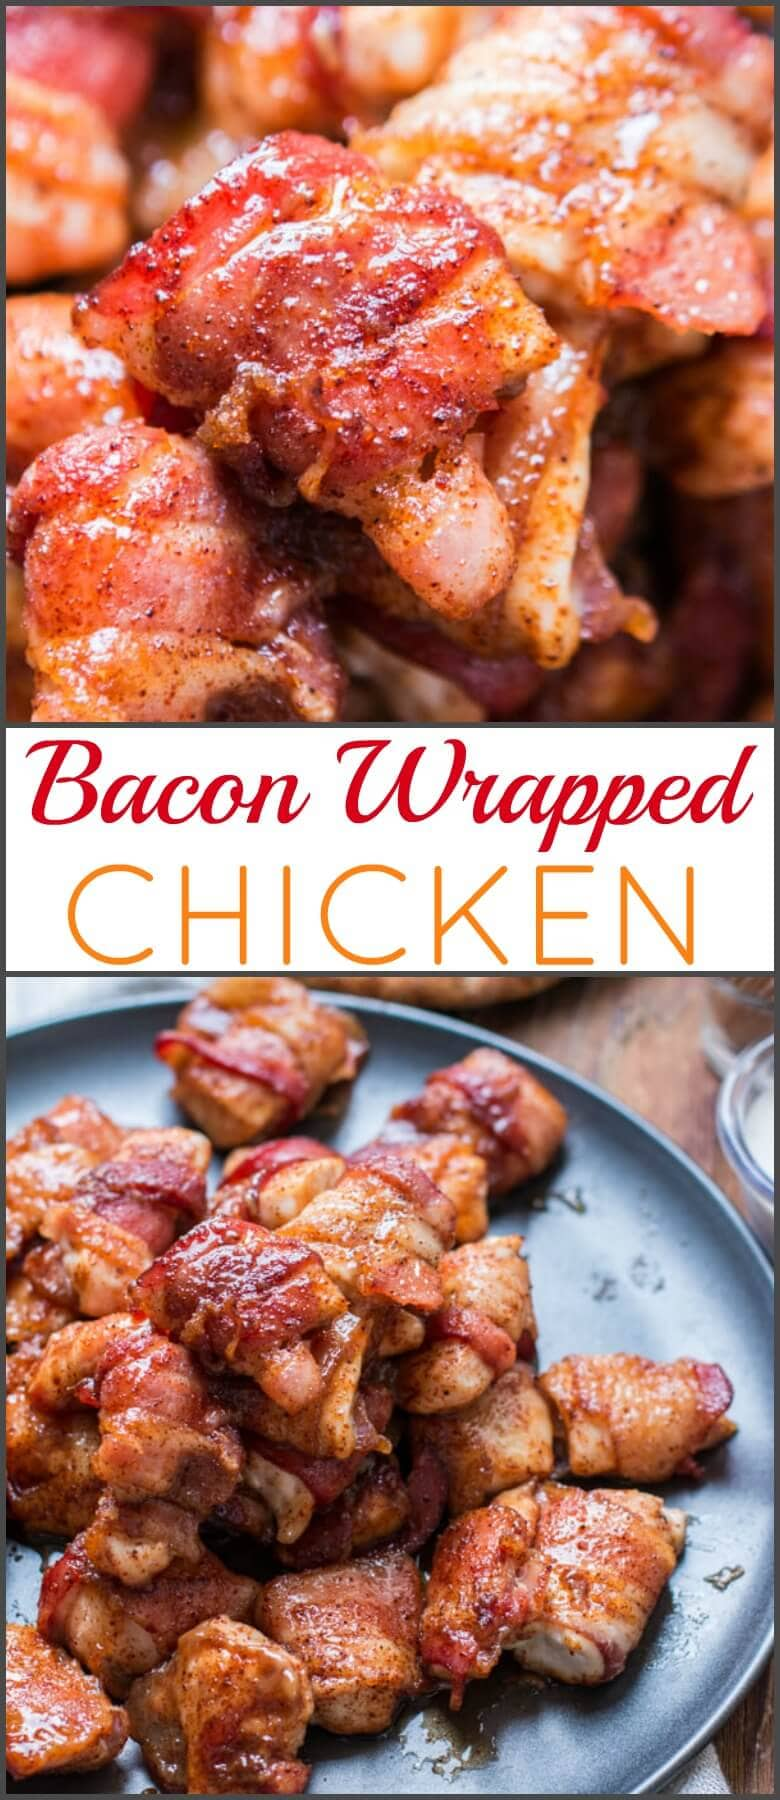 Bacon wrapped chicken is always a hit when served at the family dinner table or served as appetizers at your next get together. Savory, juicy and delicious! ohsweetbasil.com